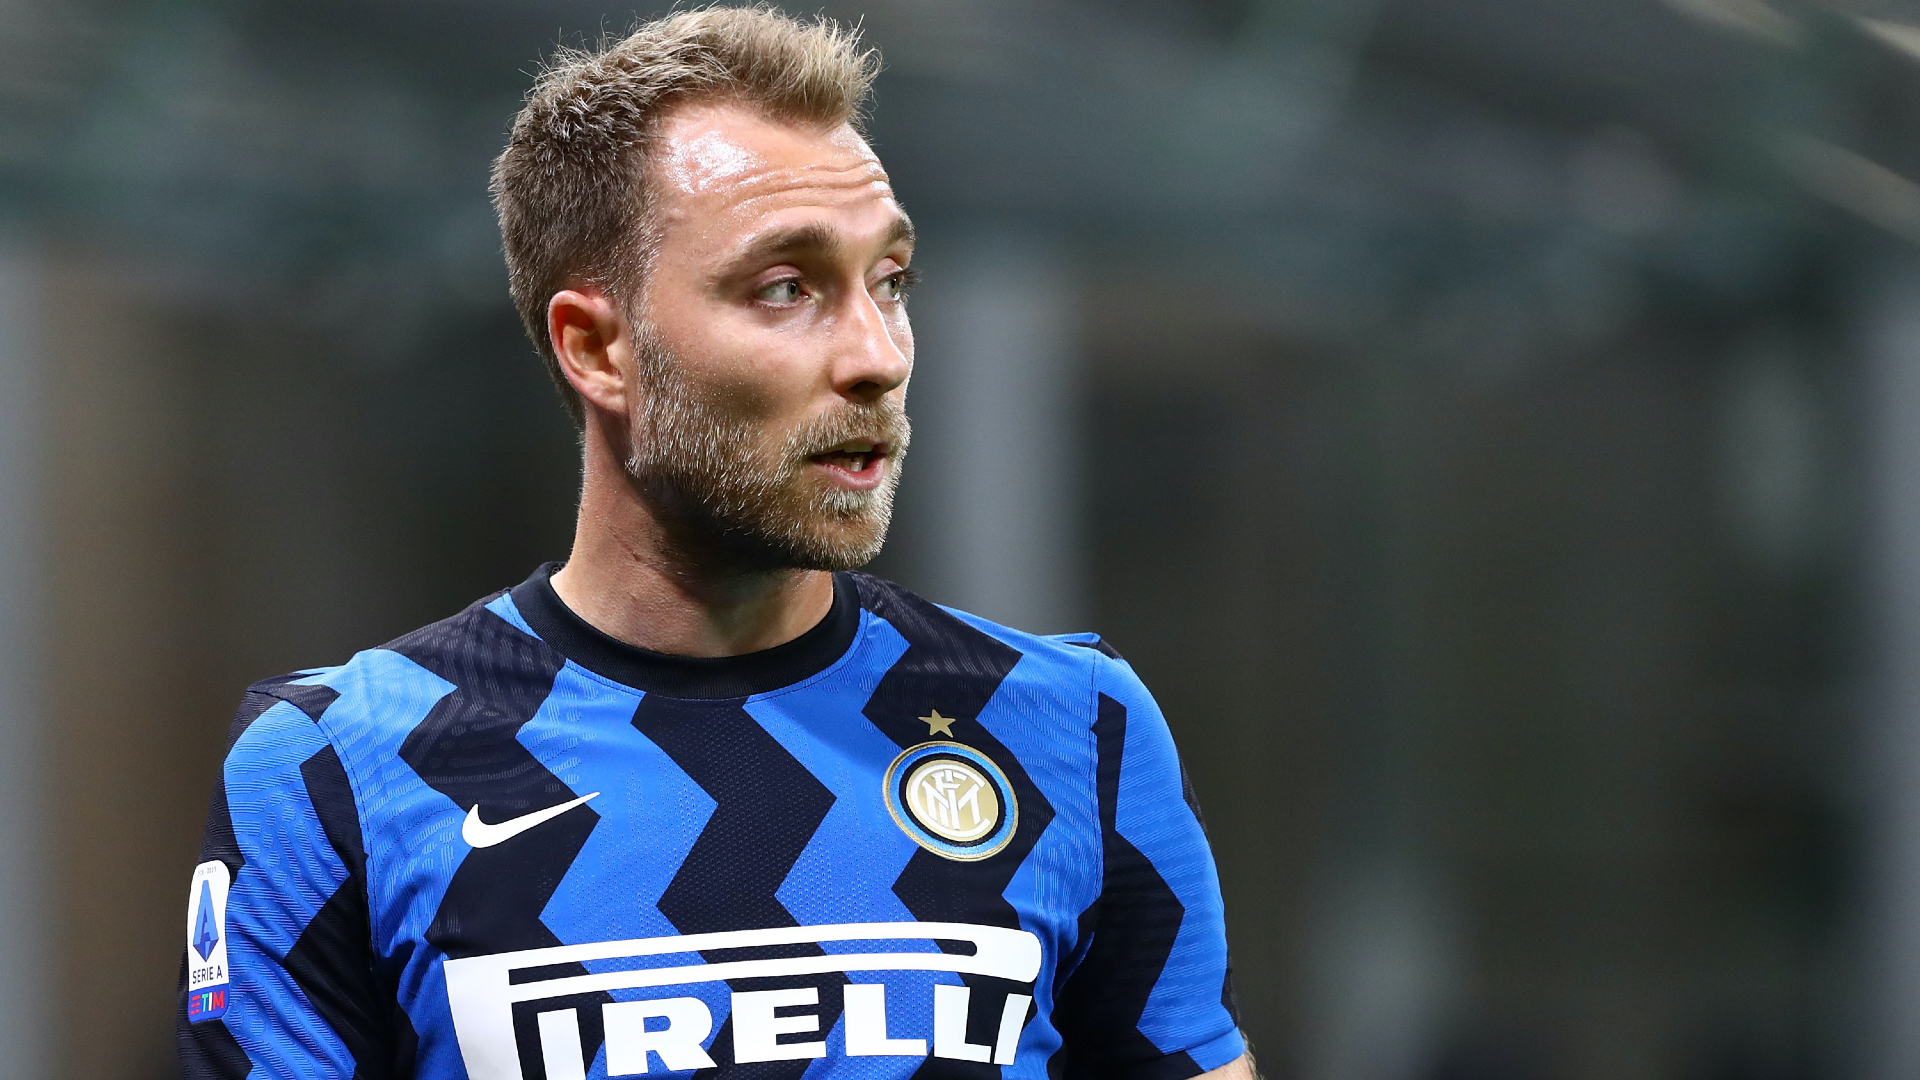 Eriksen can leave in January, Inter CEO Marotta confirms